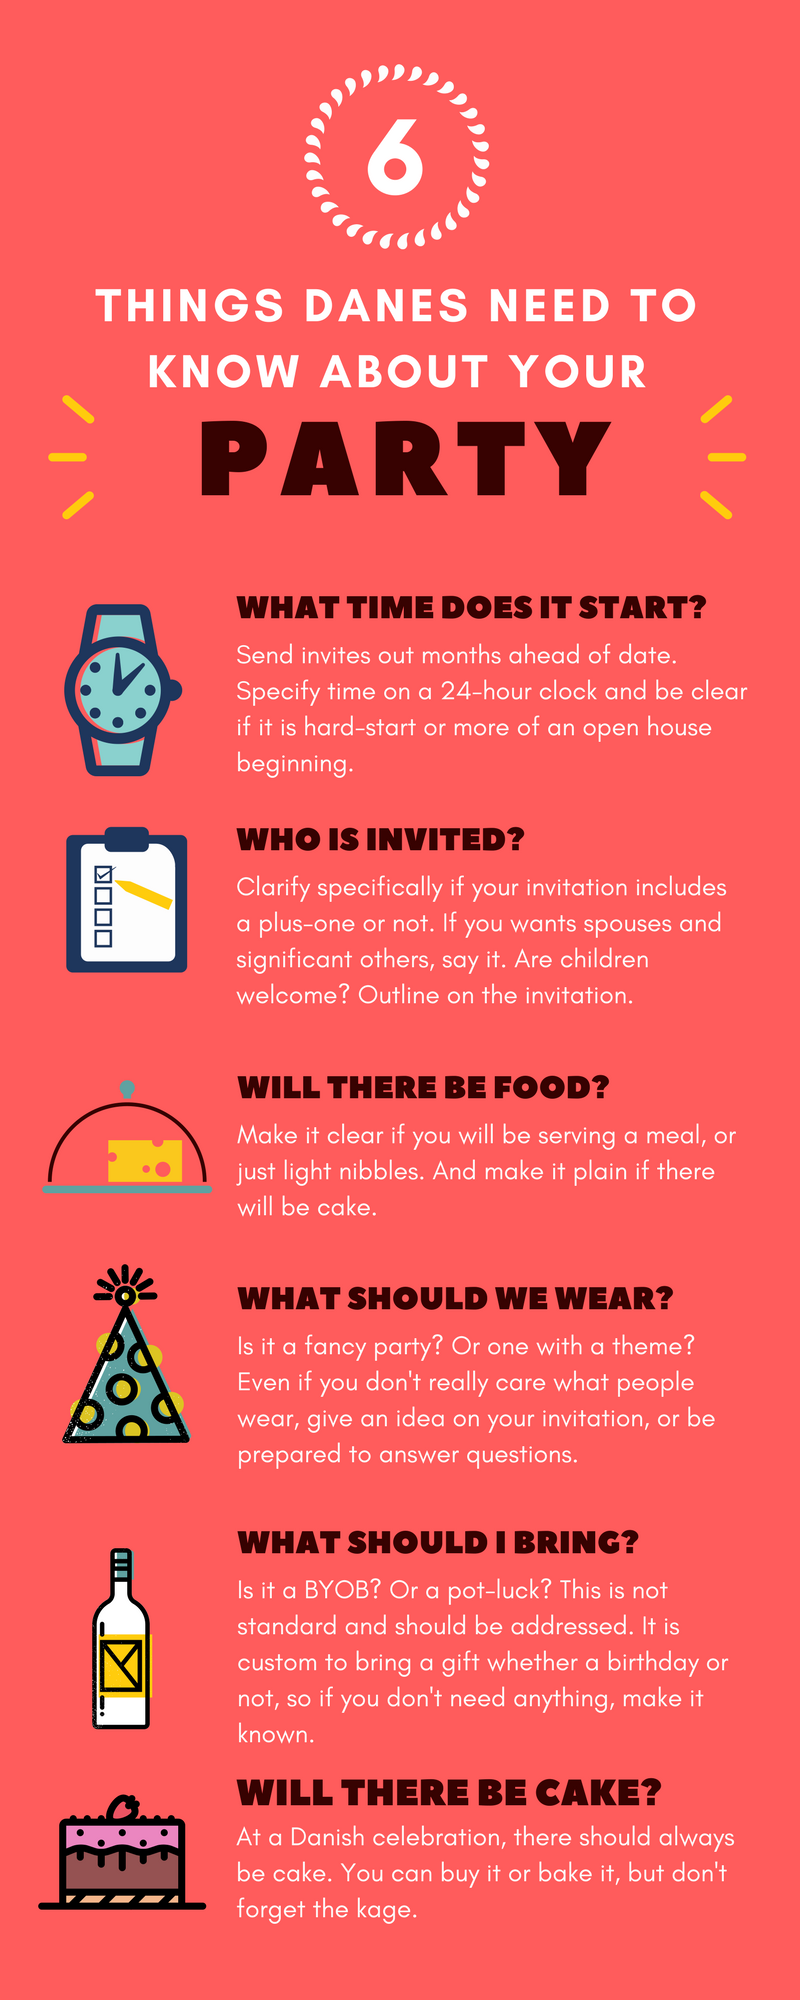 6 things danes need to know about your party how to invite danes 6 things danes need to know about your party how to invite danes to a party via oregon girl around the world oregon girl around the world stopboris Choice Image